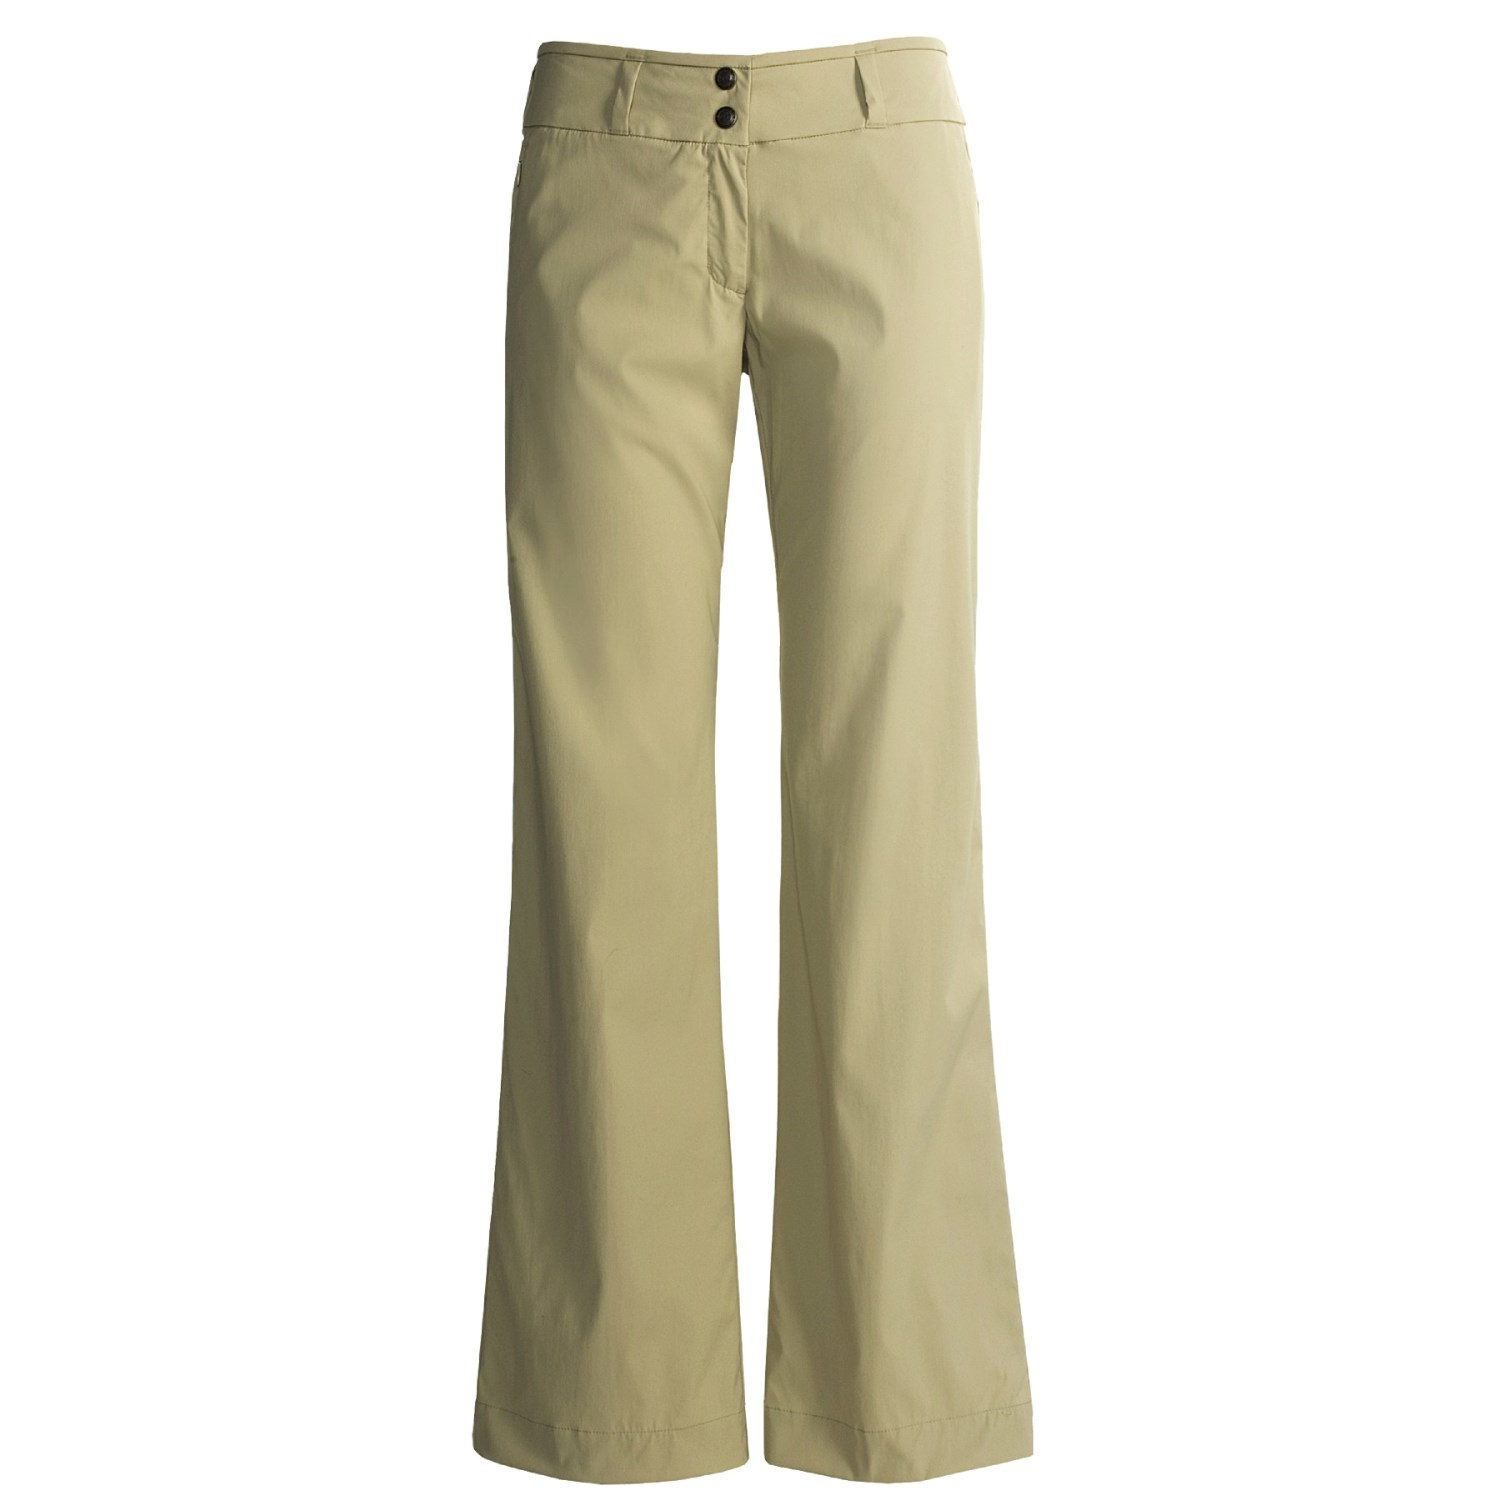 New MidRise Skinny Khakis For Women  Old Navy